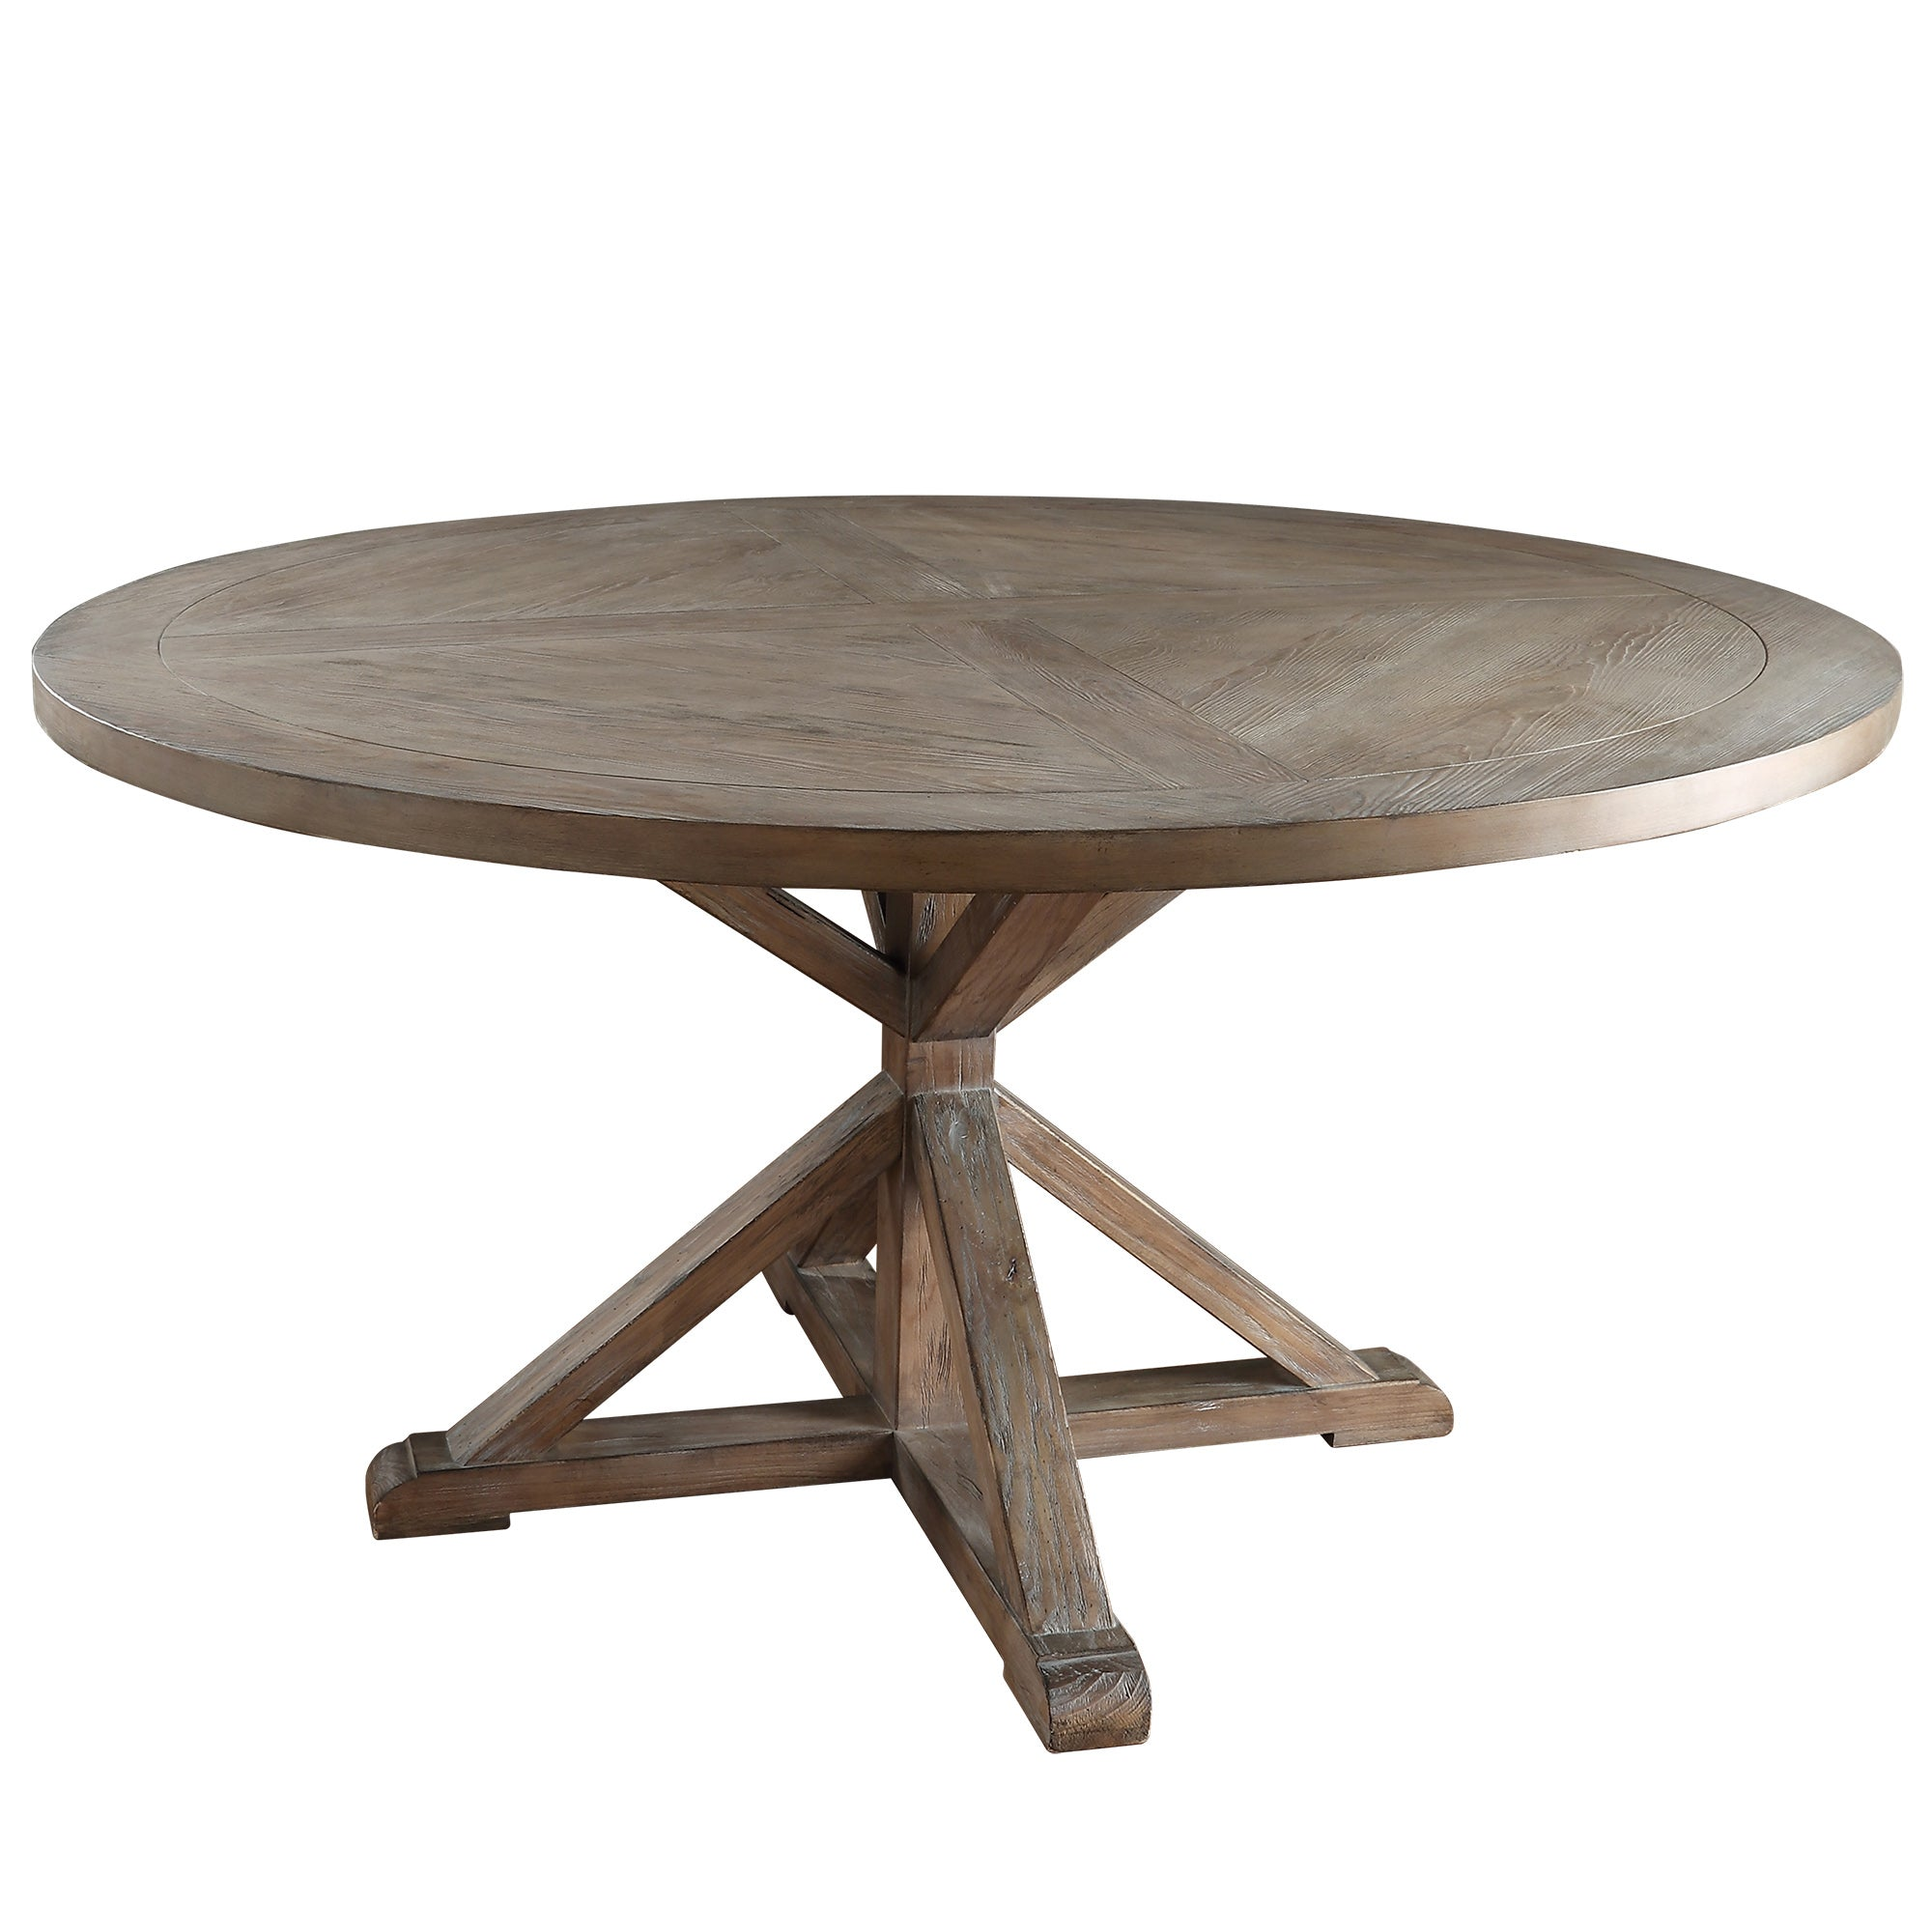 "Rustic X-Base Round Pine Wood Dining Table - 60"" - Pine Finish"